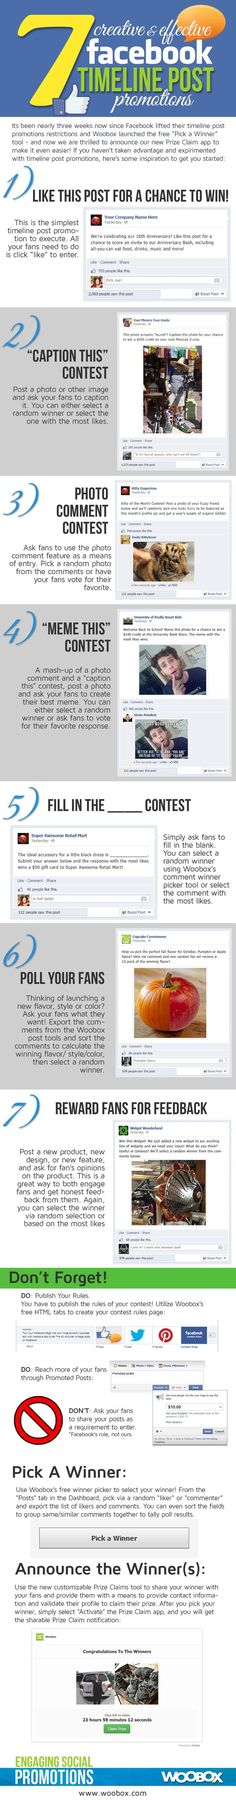 Facebook Promotions Ideas Infographic. Open a #Facebook page for the opening day of the Student Union and post statuses using these effective methods. #socialmedia